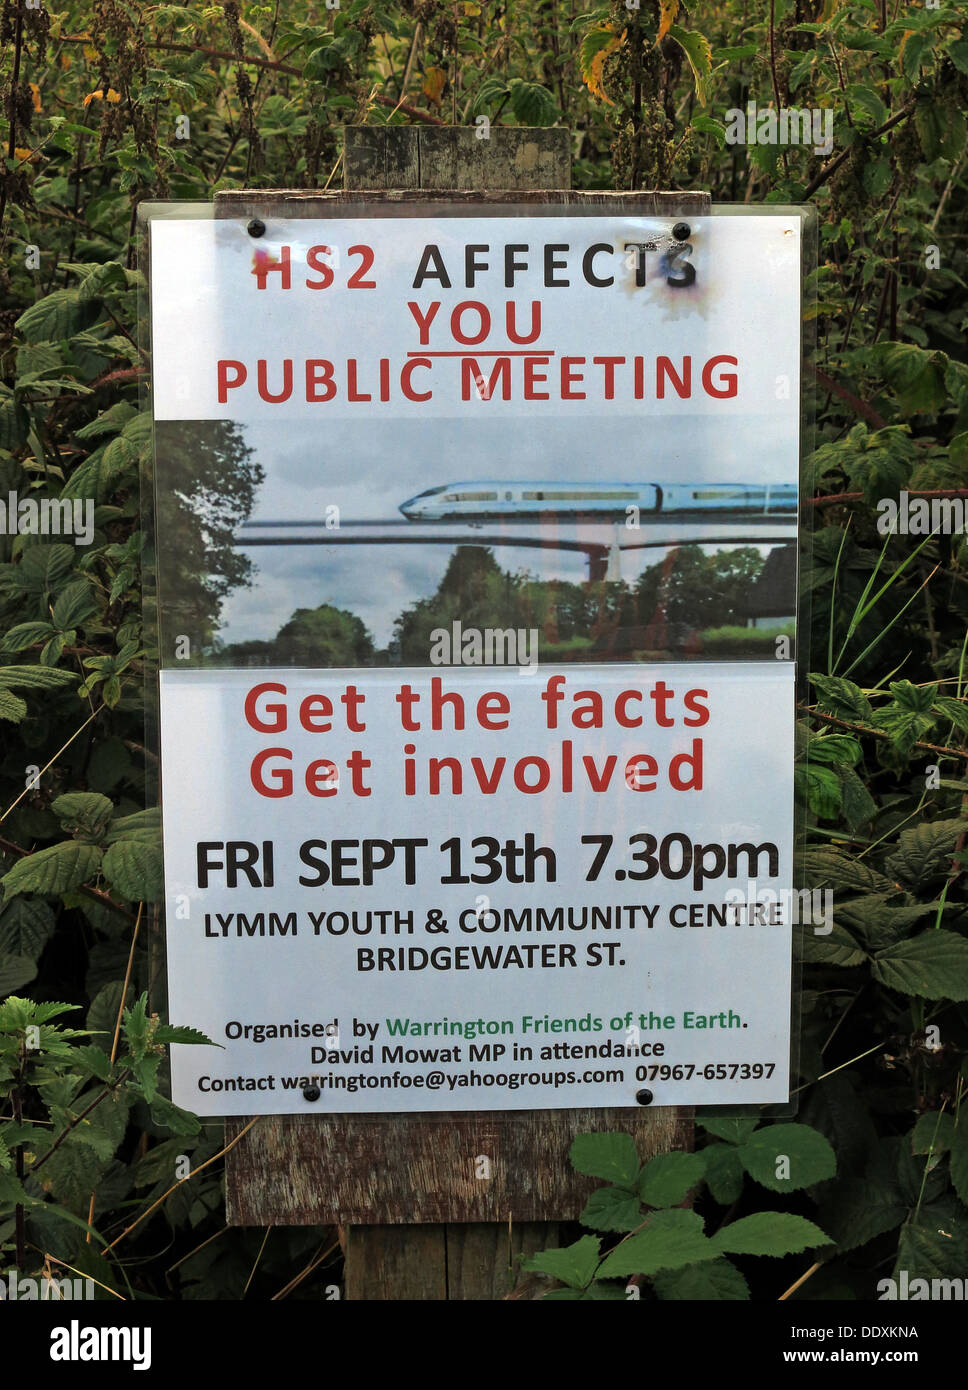 HS2 affects you poster,Public Meeting,Lymm,Cheshire,England,UK - Stock Image